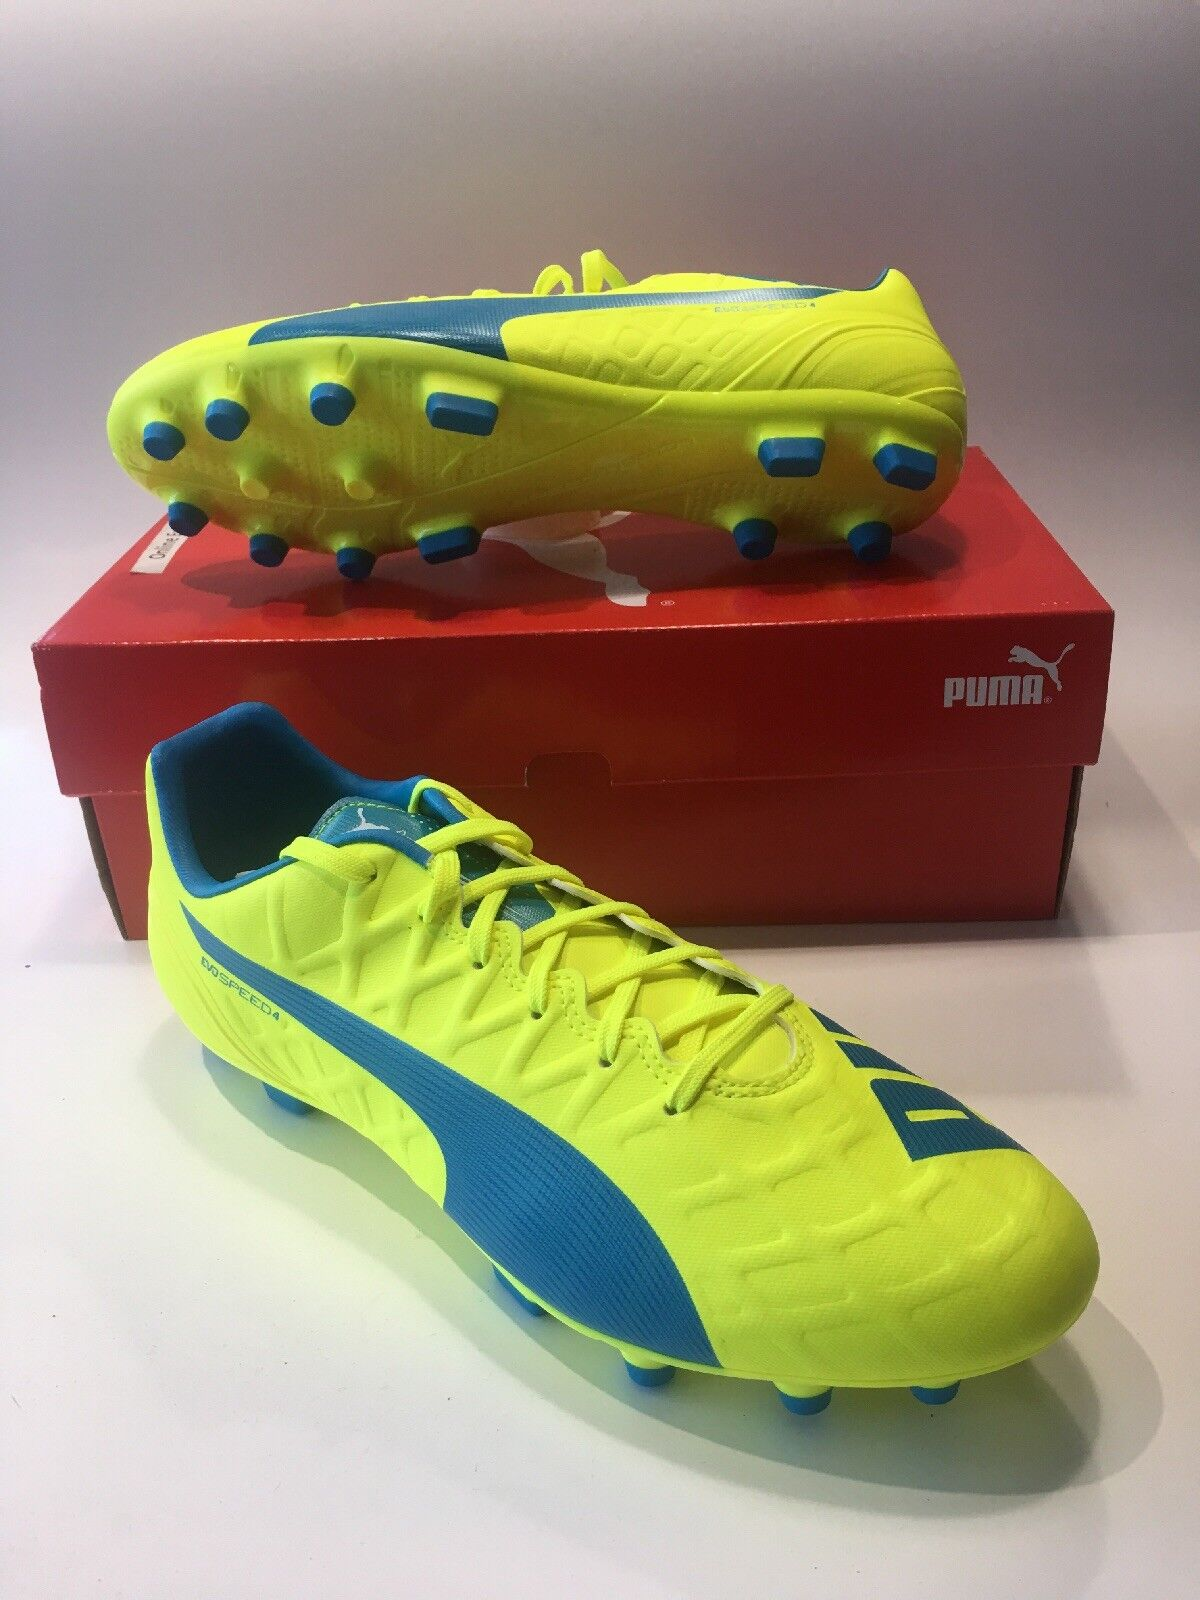 reputable site 1100b 7cd2f Puma EVO SPEED 4.4 Unisex Scarpe Scarpe Scarpe Da Calcio-Taglia 9 UK eacbbb